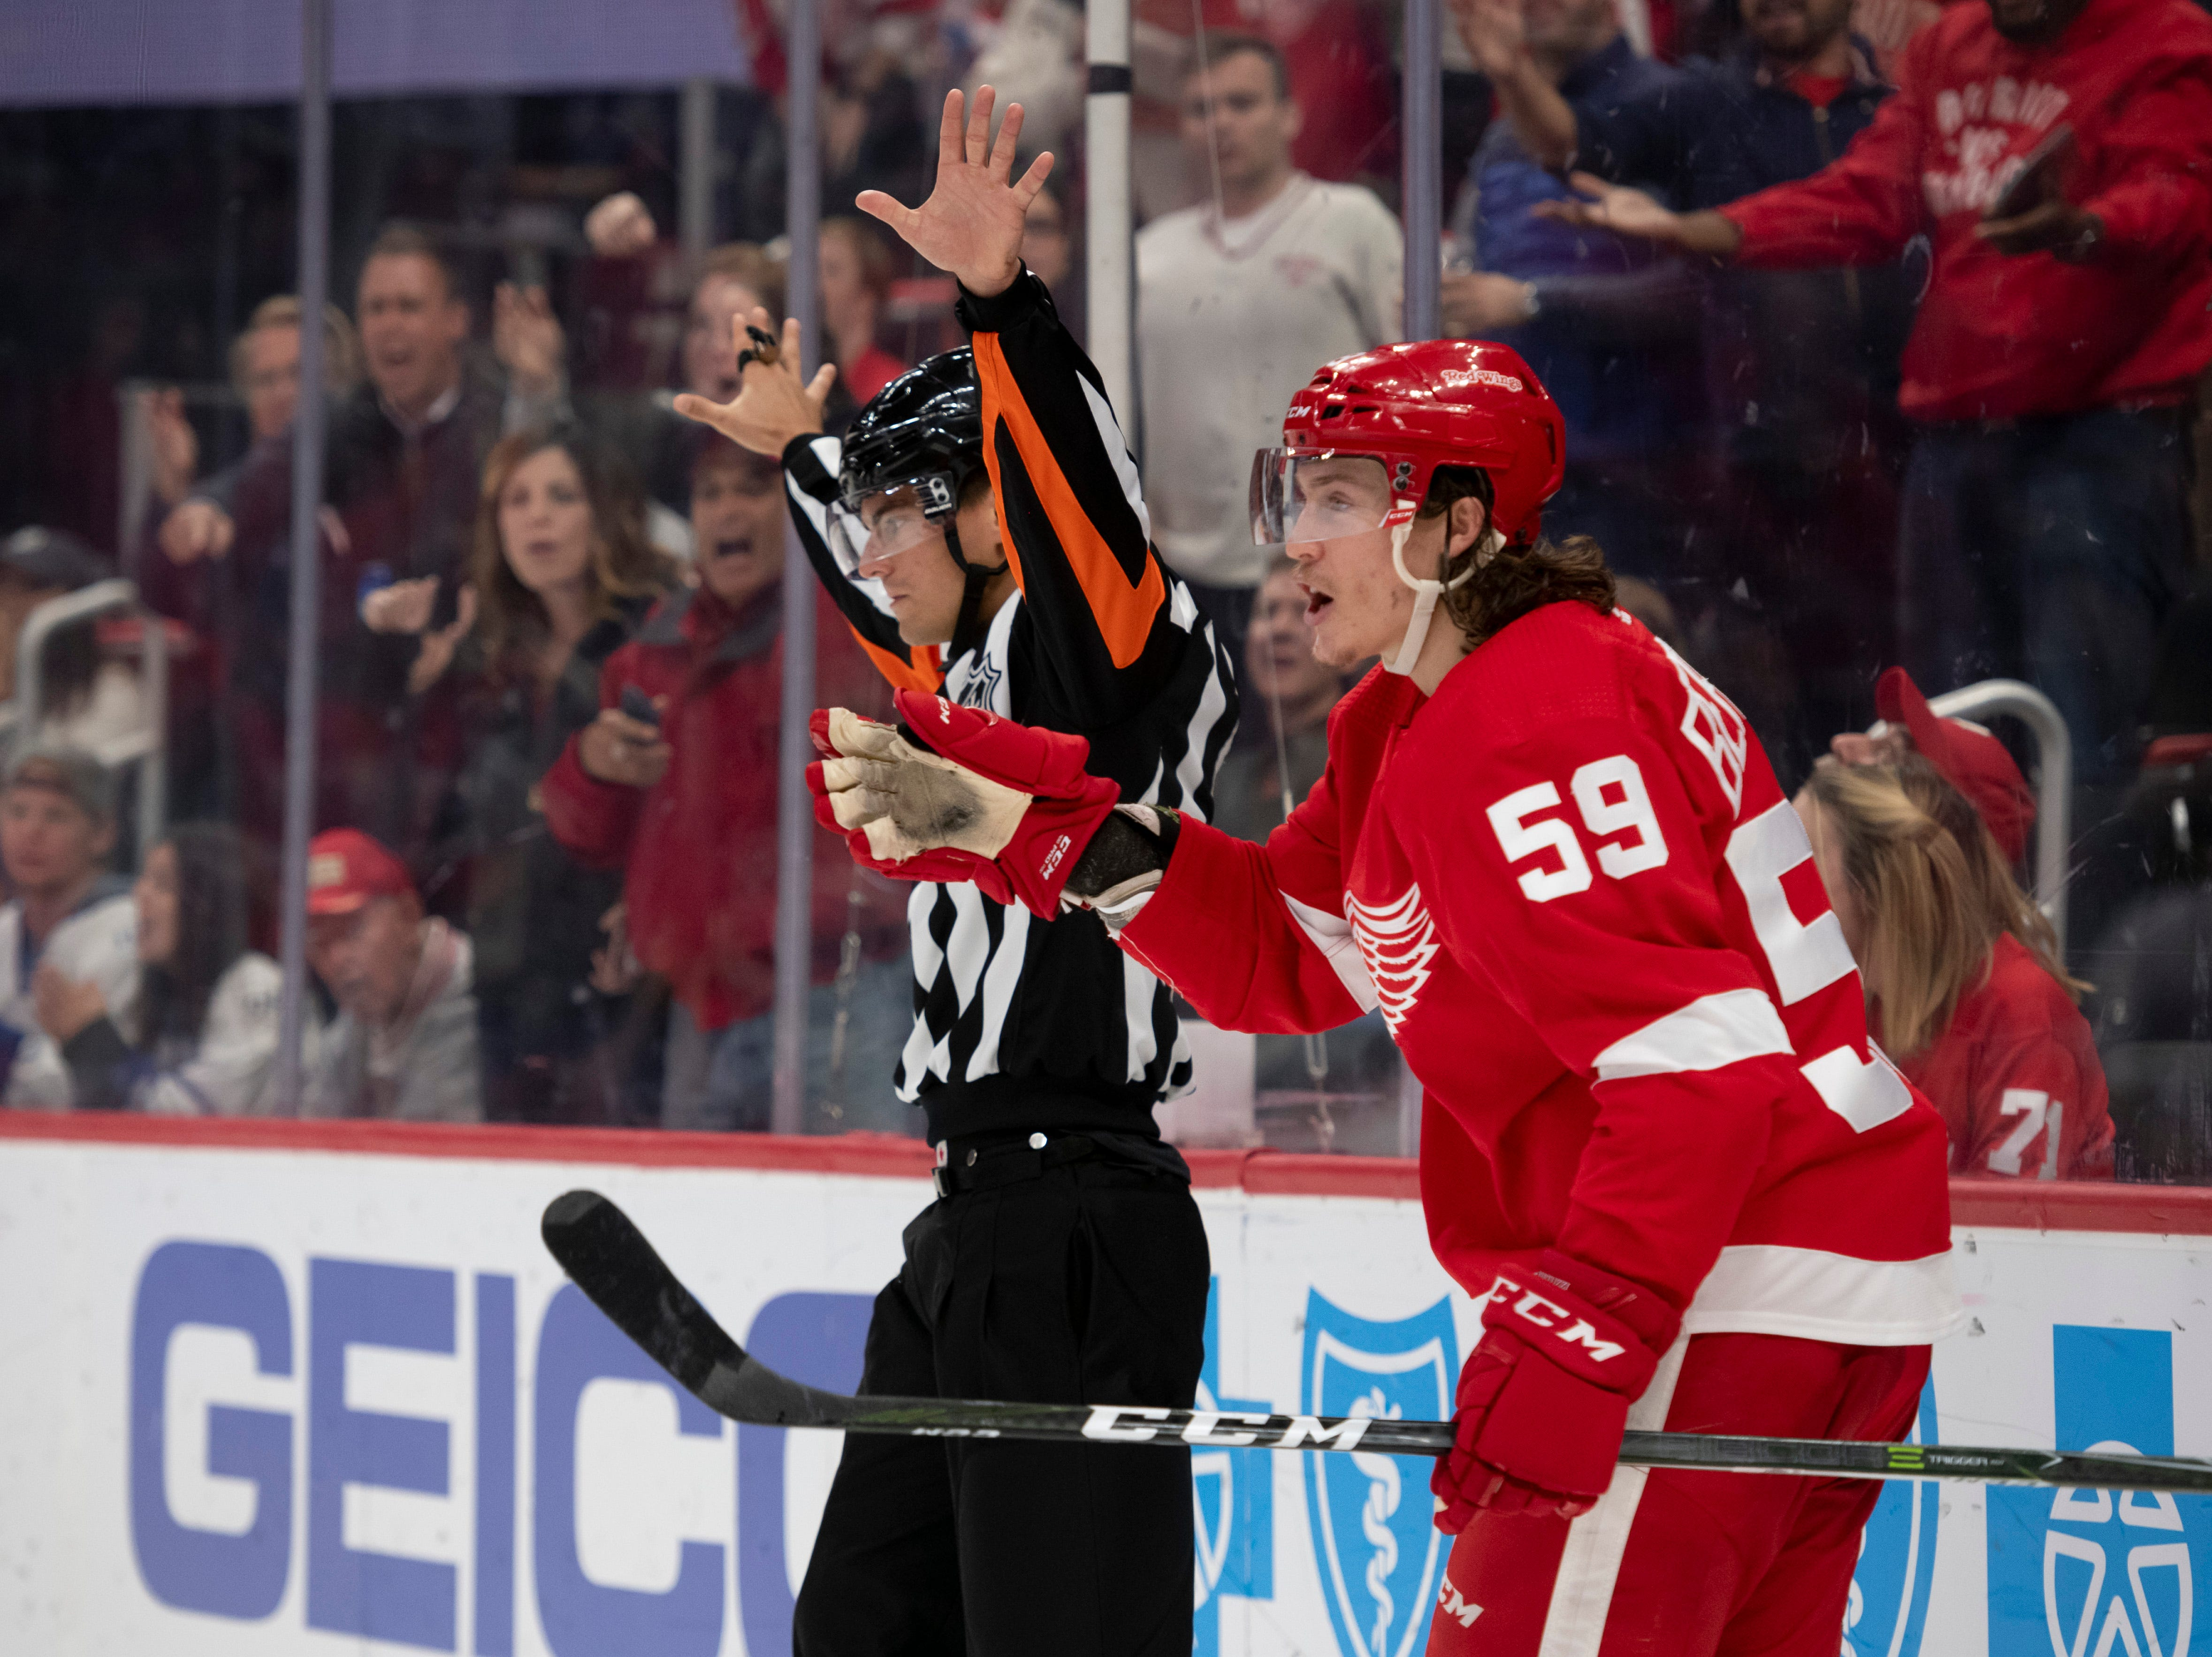 Detroit left wing Tyler Bertuzzi argues with referee Kendrick Nicholson after a shot by teammate Dylan Larkin went into the net during the third period.  The play was eventually ruled a goal.